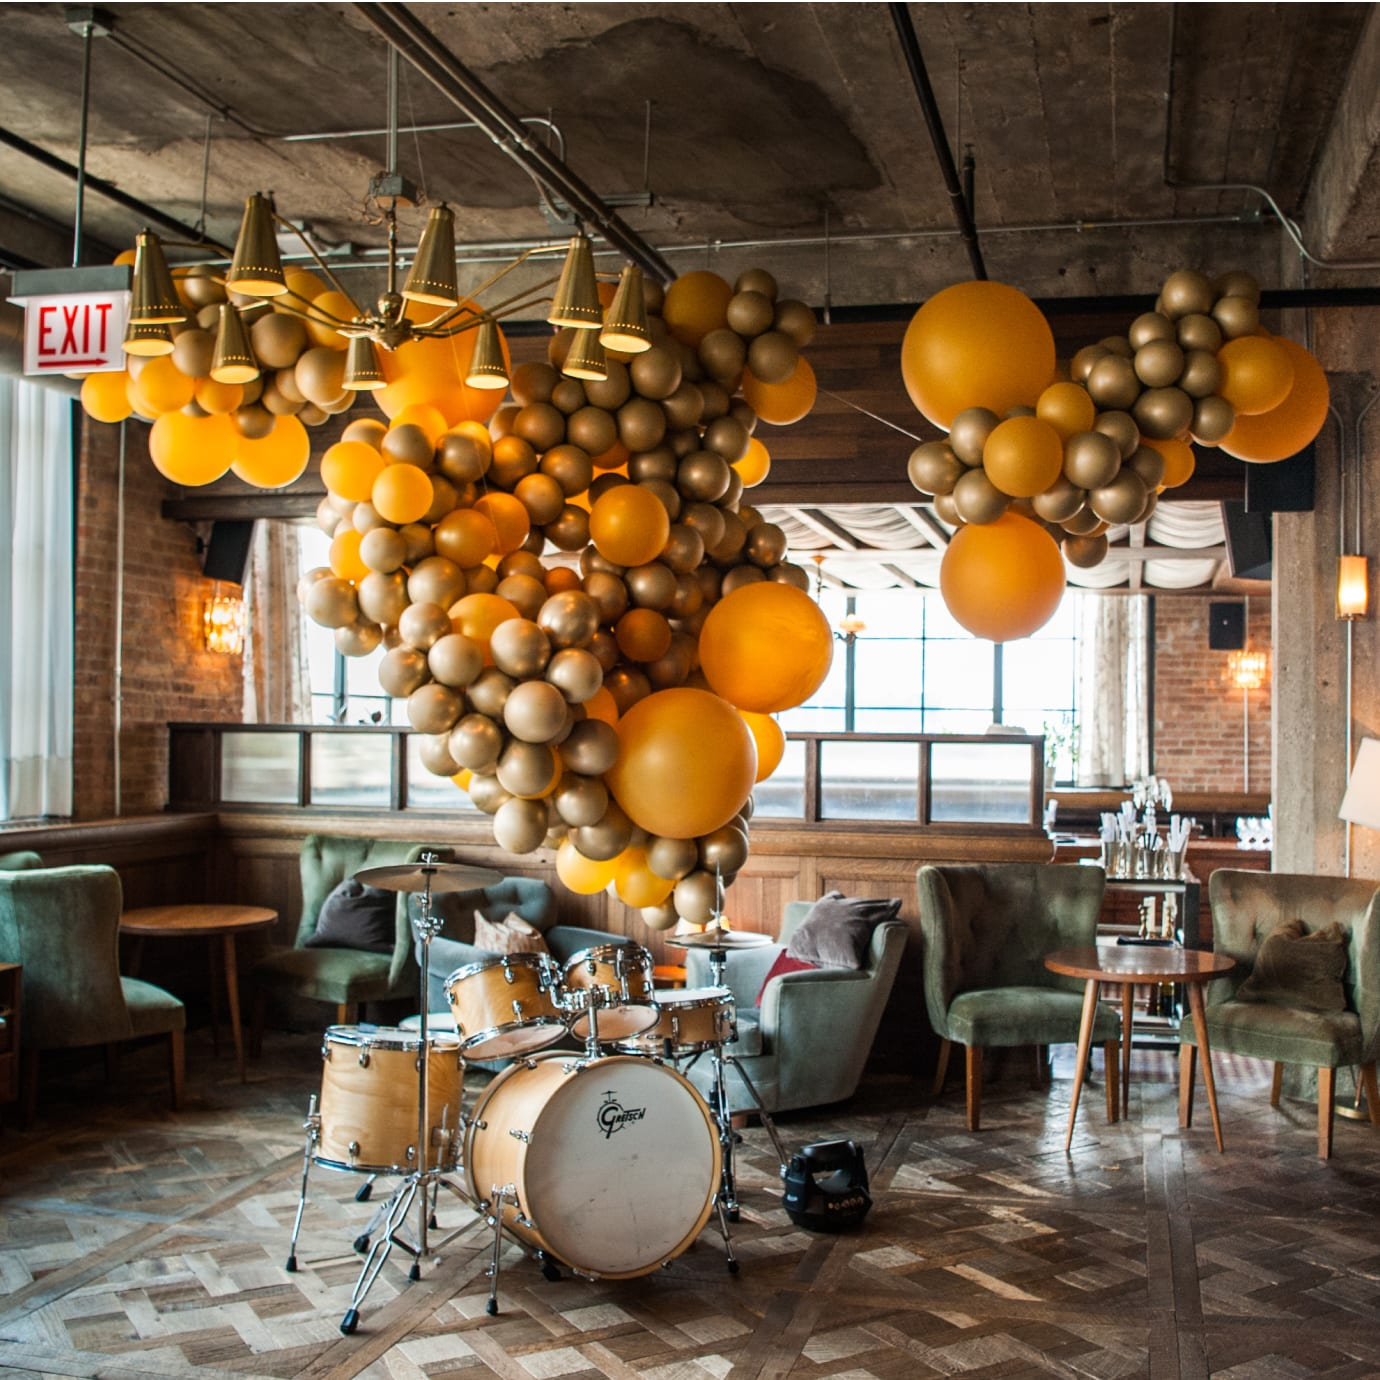 A balloon installation in a room above a drum kit.